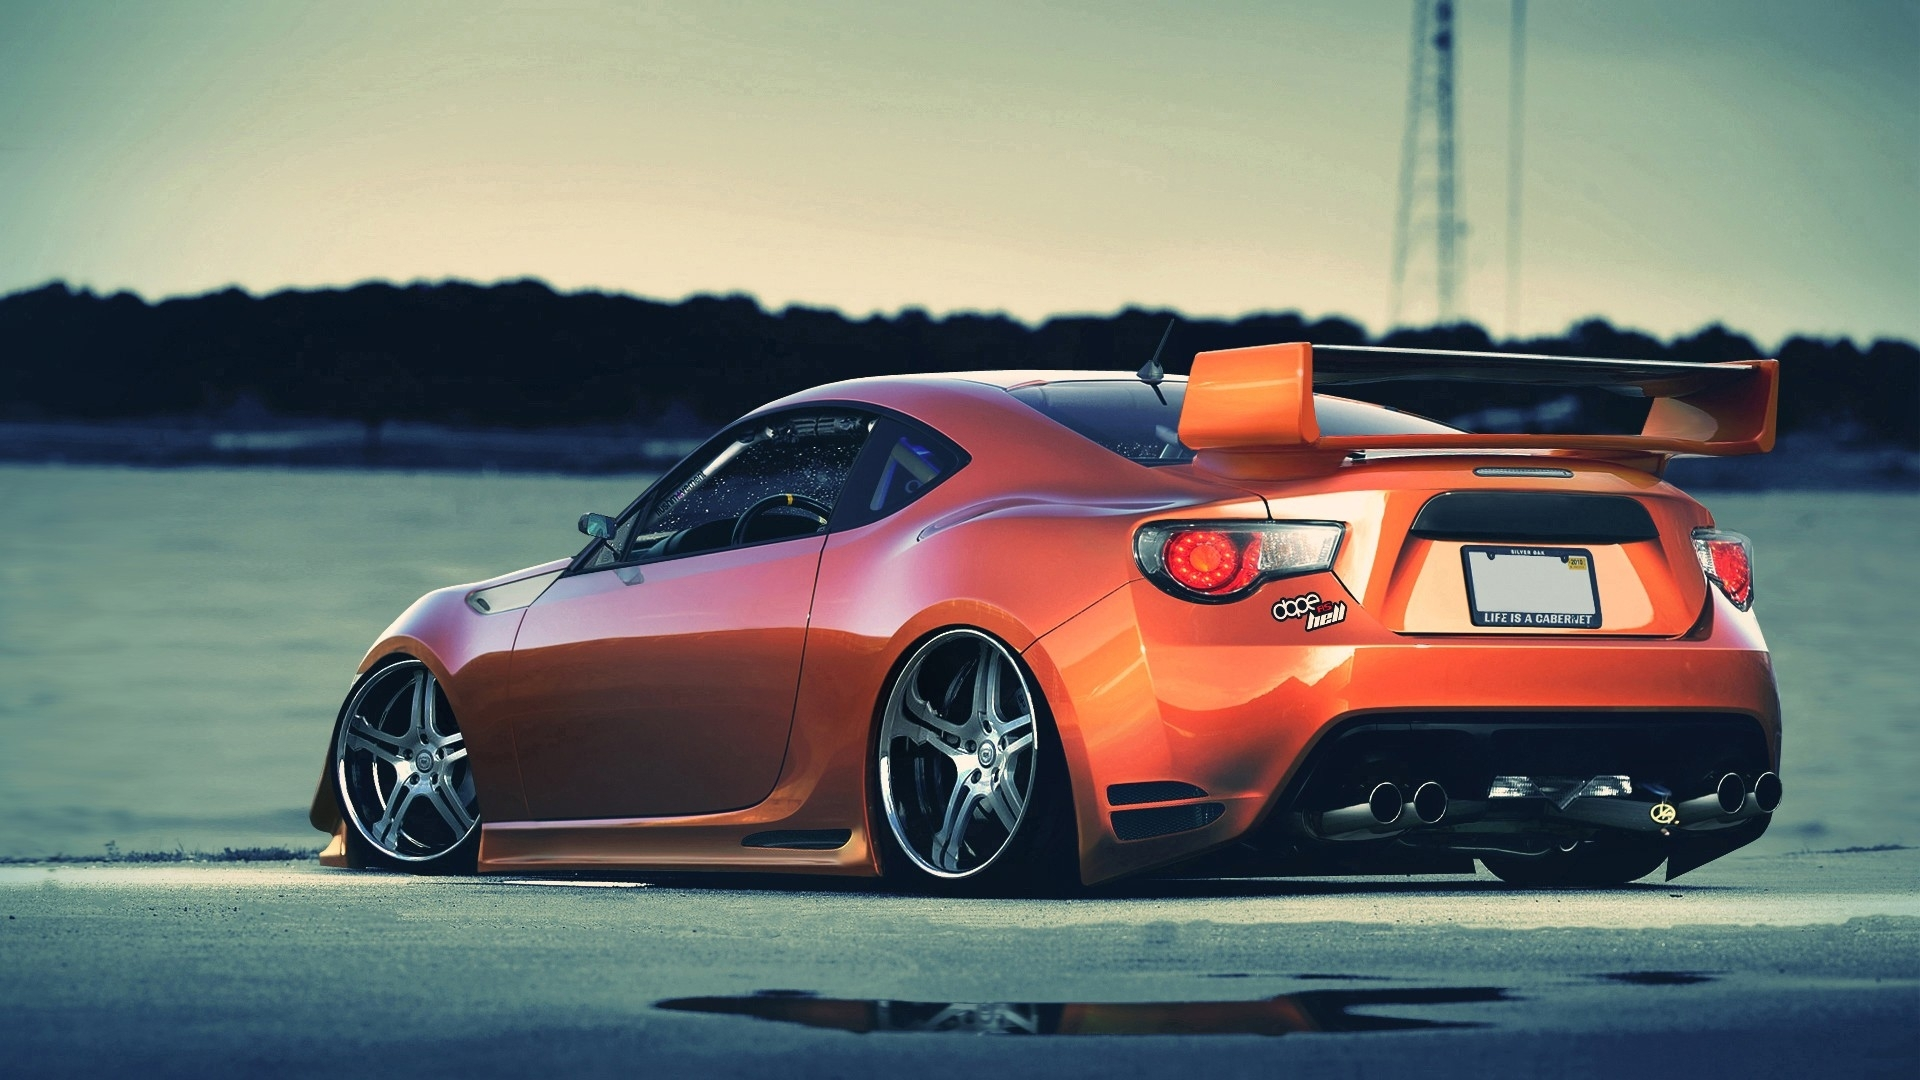 cars tuning toyota gt86 wallpaper 1920x1080 30260 wallpaperup. Black Bedroom Furniture Sets. Home Design Ideas